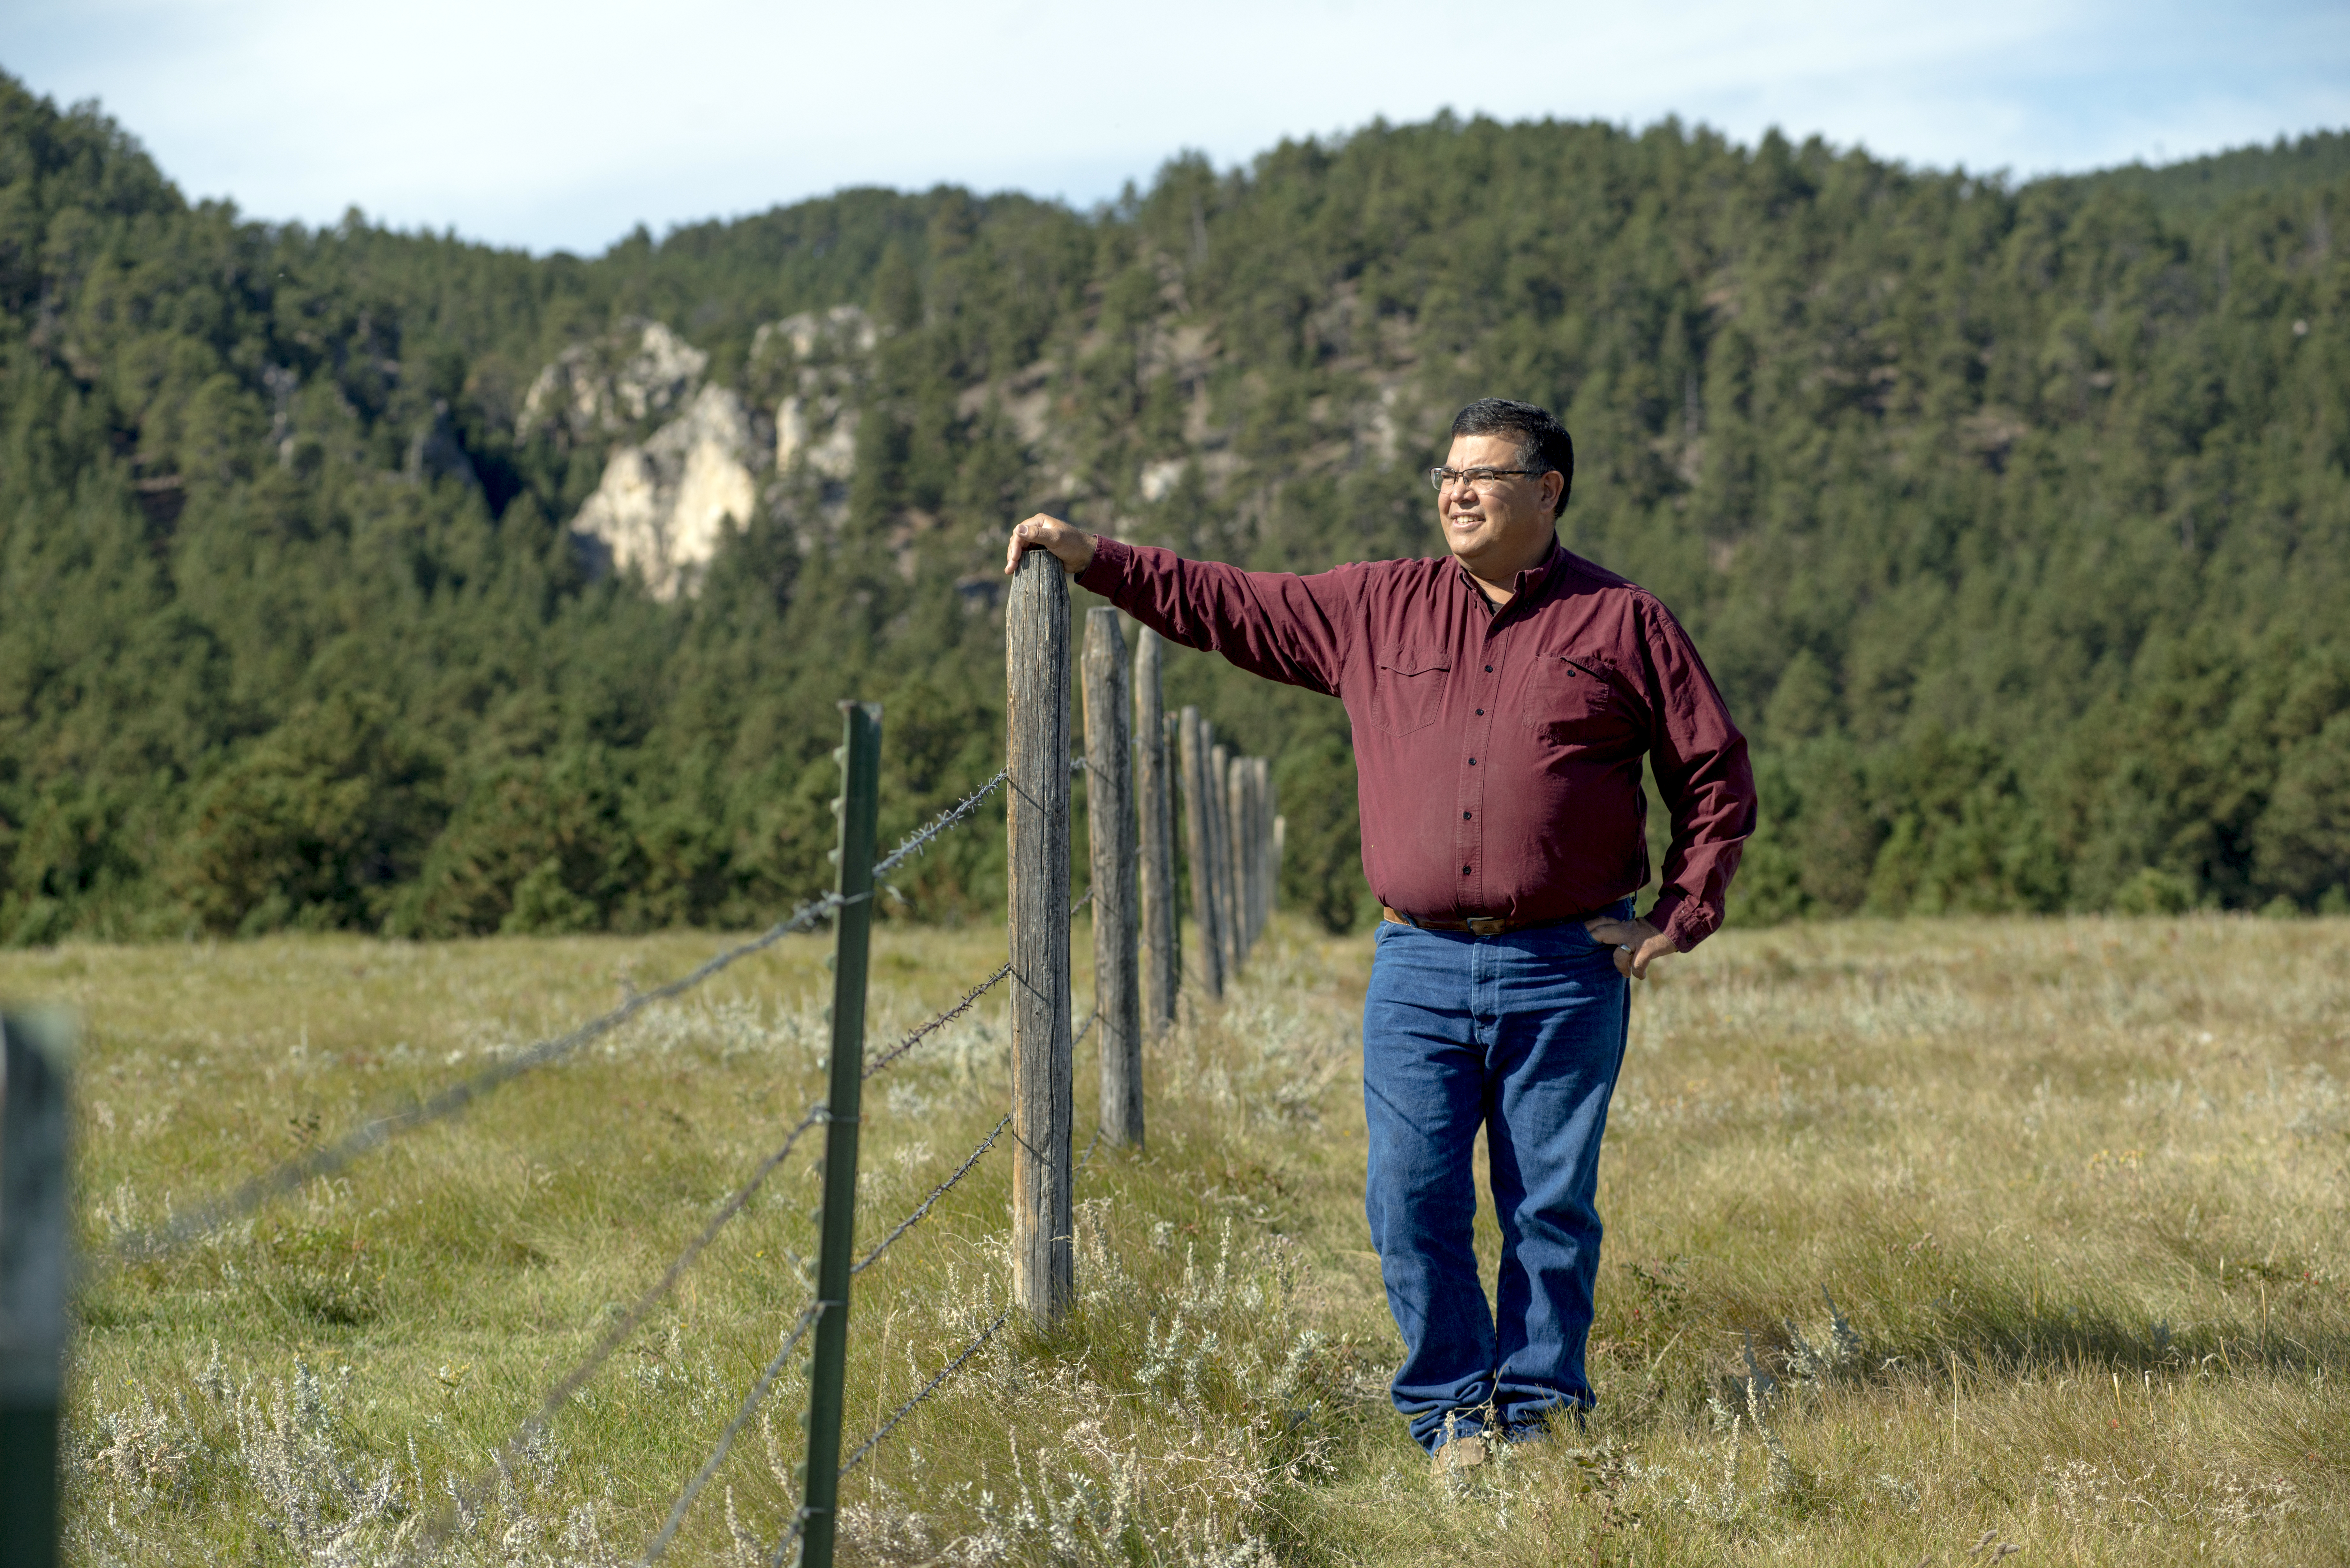 A fifth-generation rancher of the Fort Belknap Indian Reservation, Crasco has installed wildlife-friendly fencing.